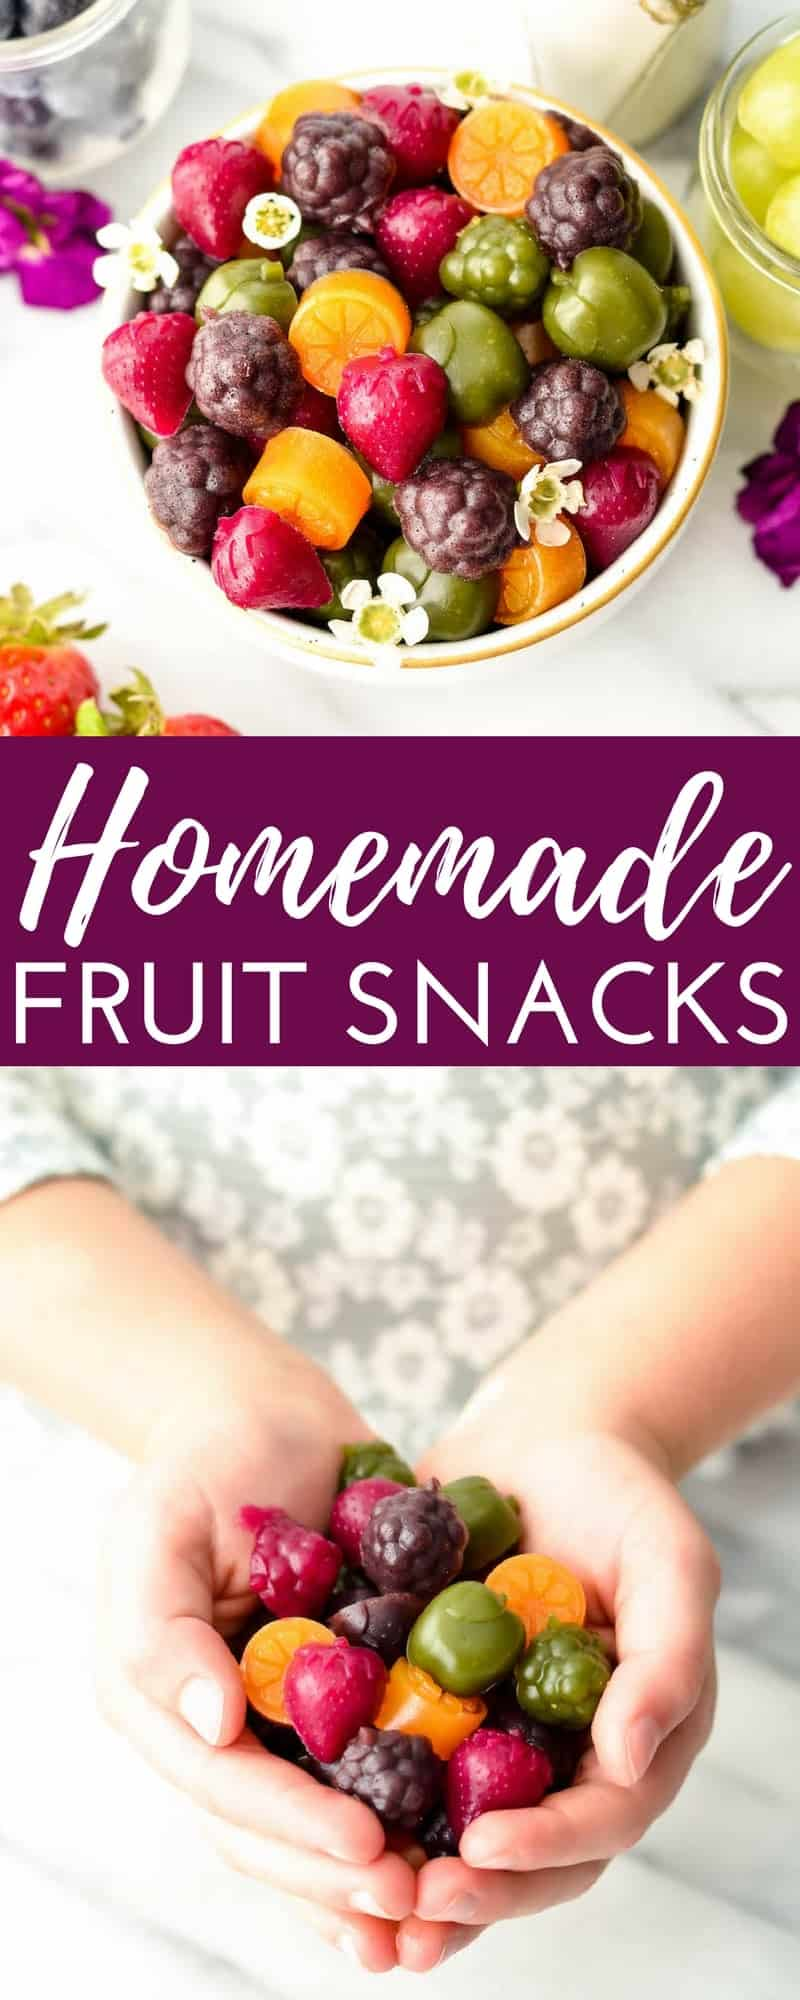 Homemade Fruit Snacks recipe made with whole fruits & vegetables! A healthy, high-protein snack loaded with nutrients made in the blender! #paleo #glutenfree #grainfree #dairyfree #refinedsugarfree #healthysnack #fruitsnacks #homemade #kidfriendly #snacktime